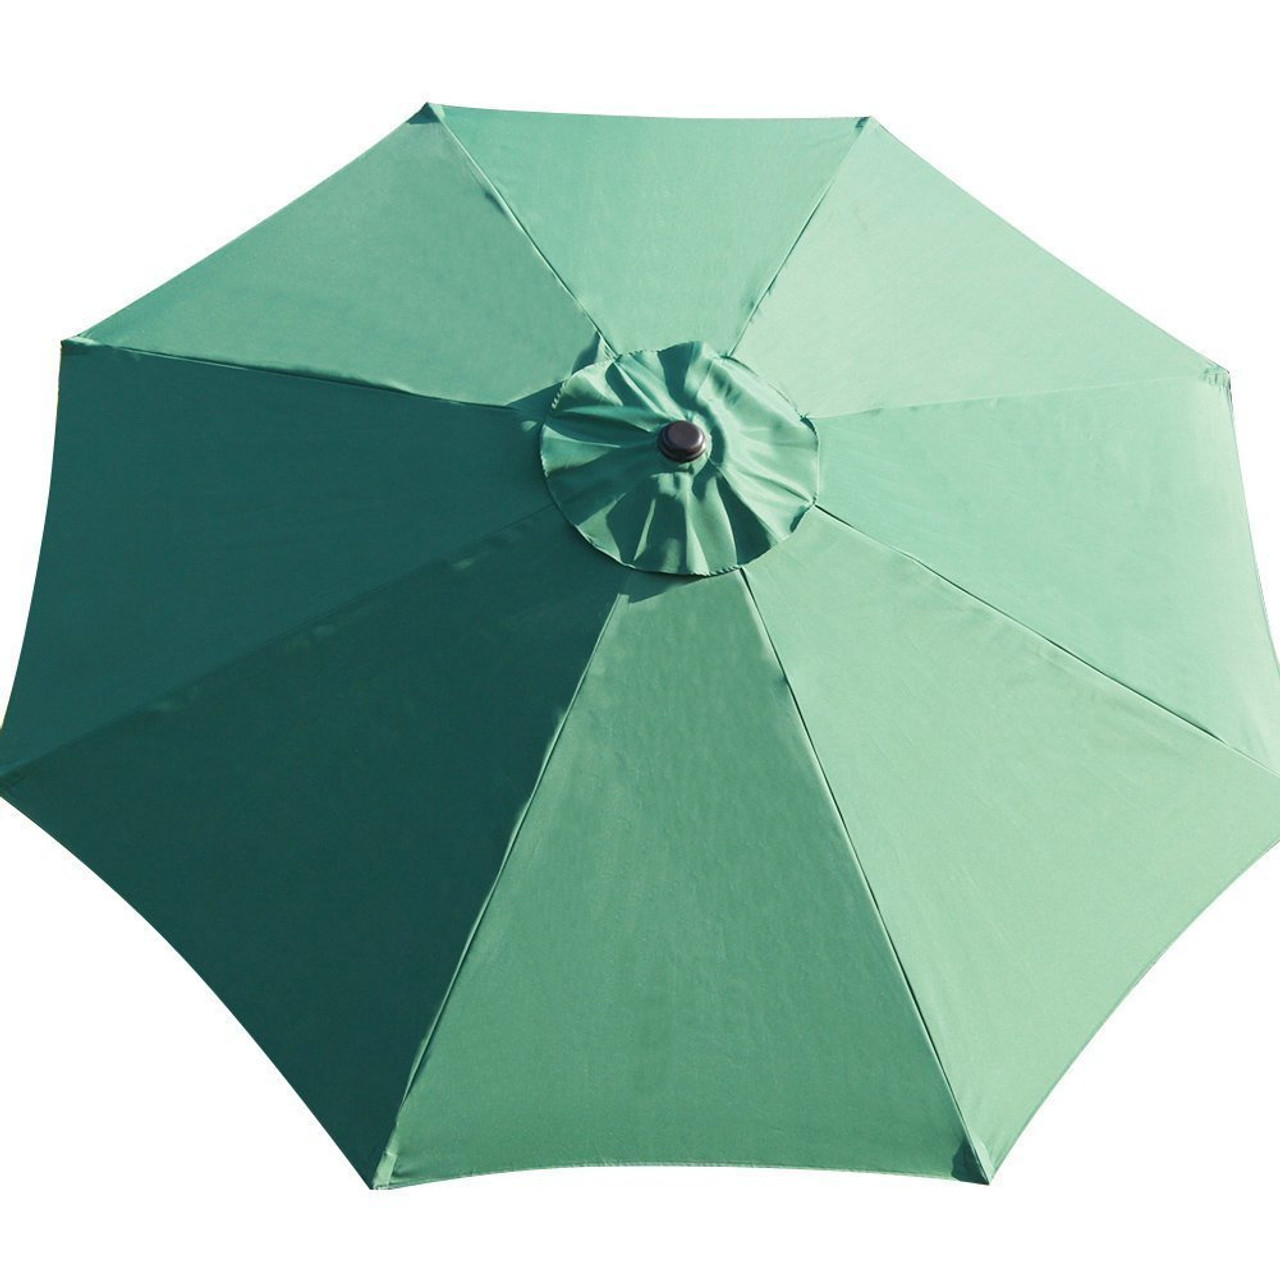 Charmant 9 Feet Patio Umbrella Replacement Cover For 8 Ribs Yard Garden Polyester  (Dark Green)